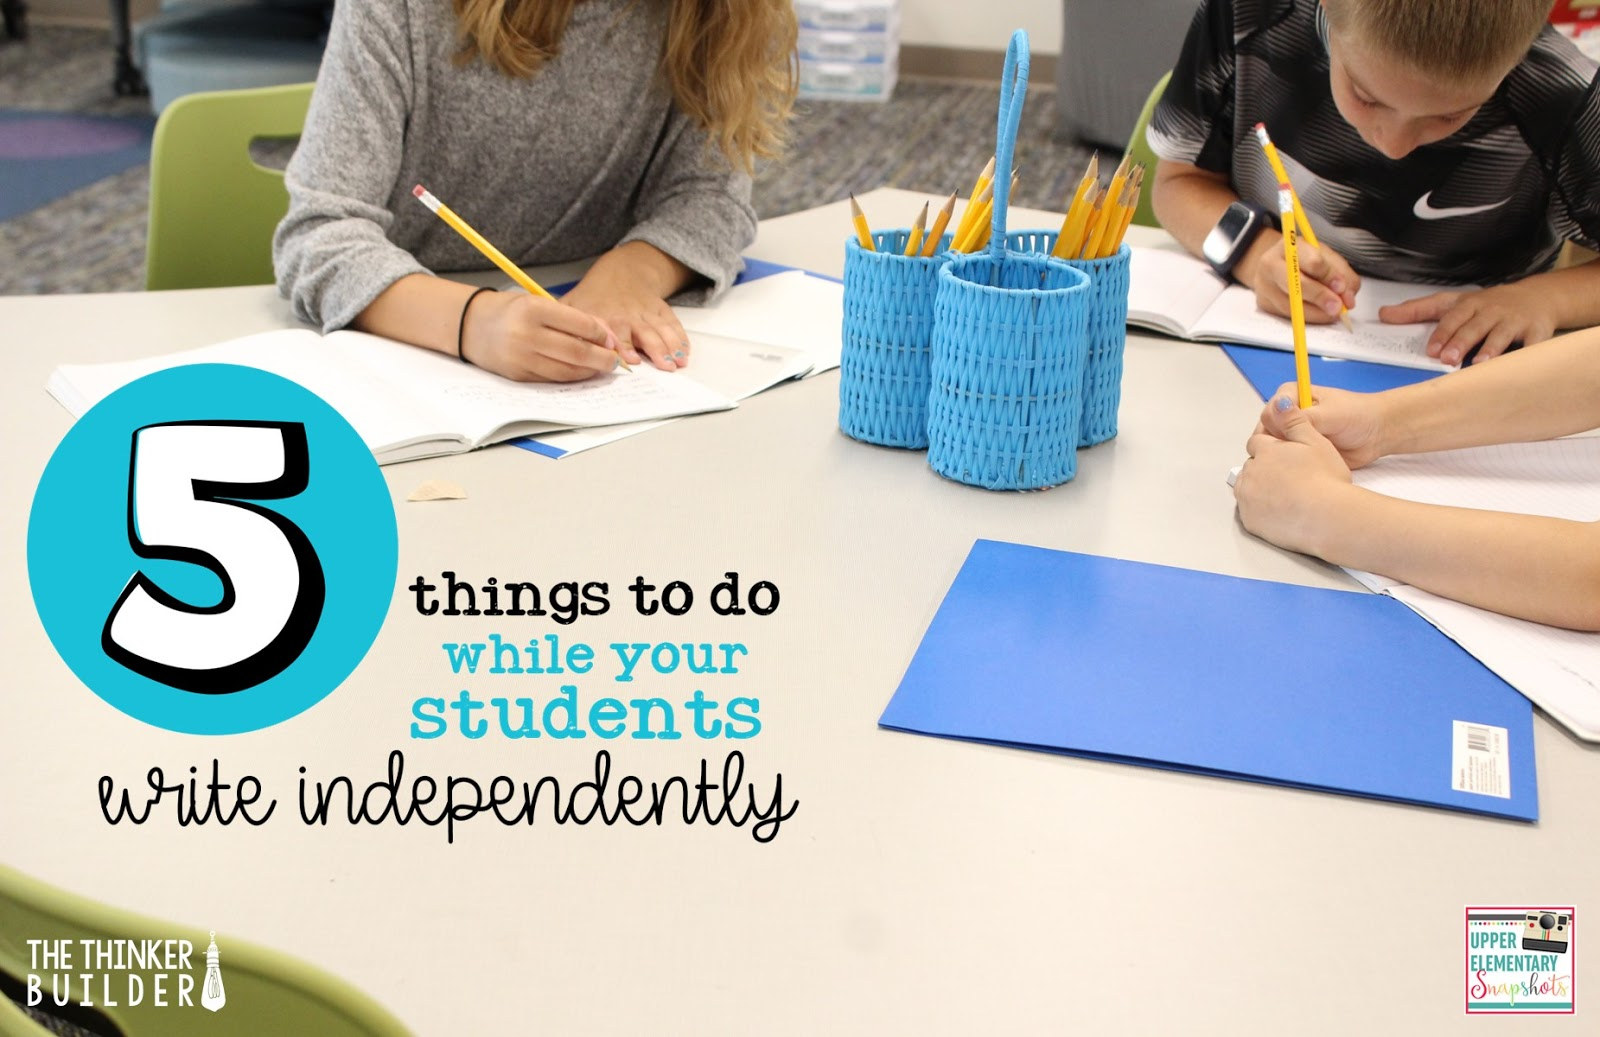 Upper Elementary Snapshots 5 Things To Do While Your Students Are